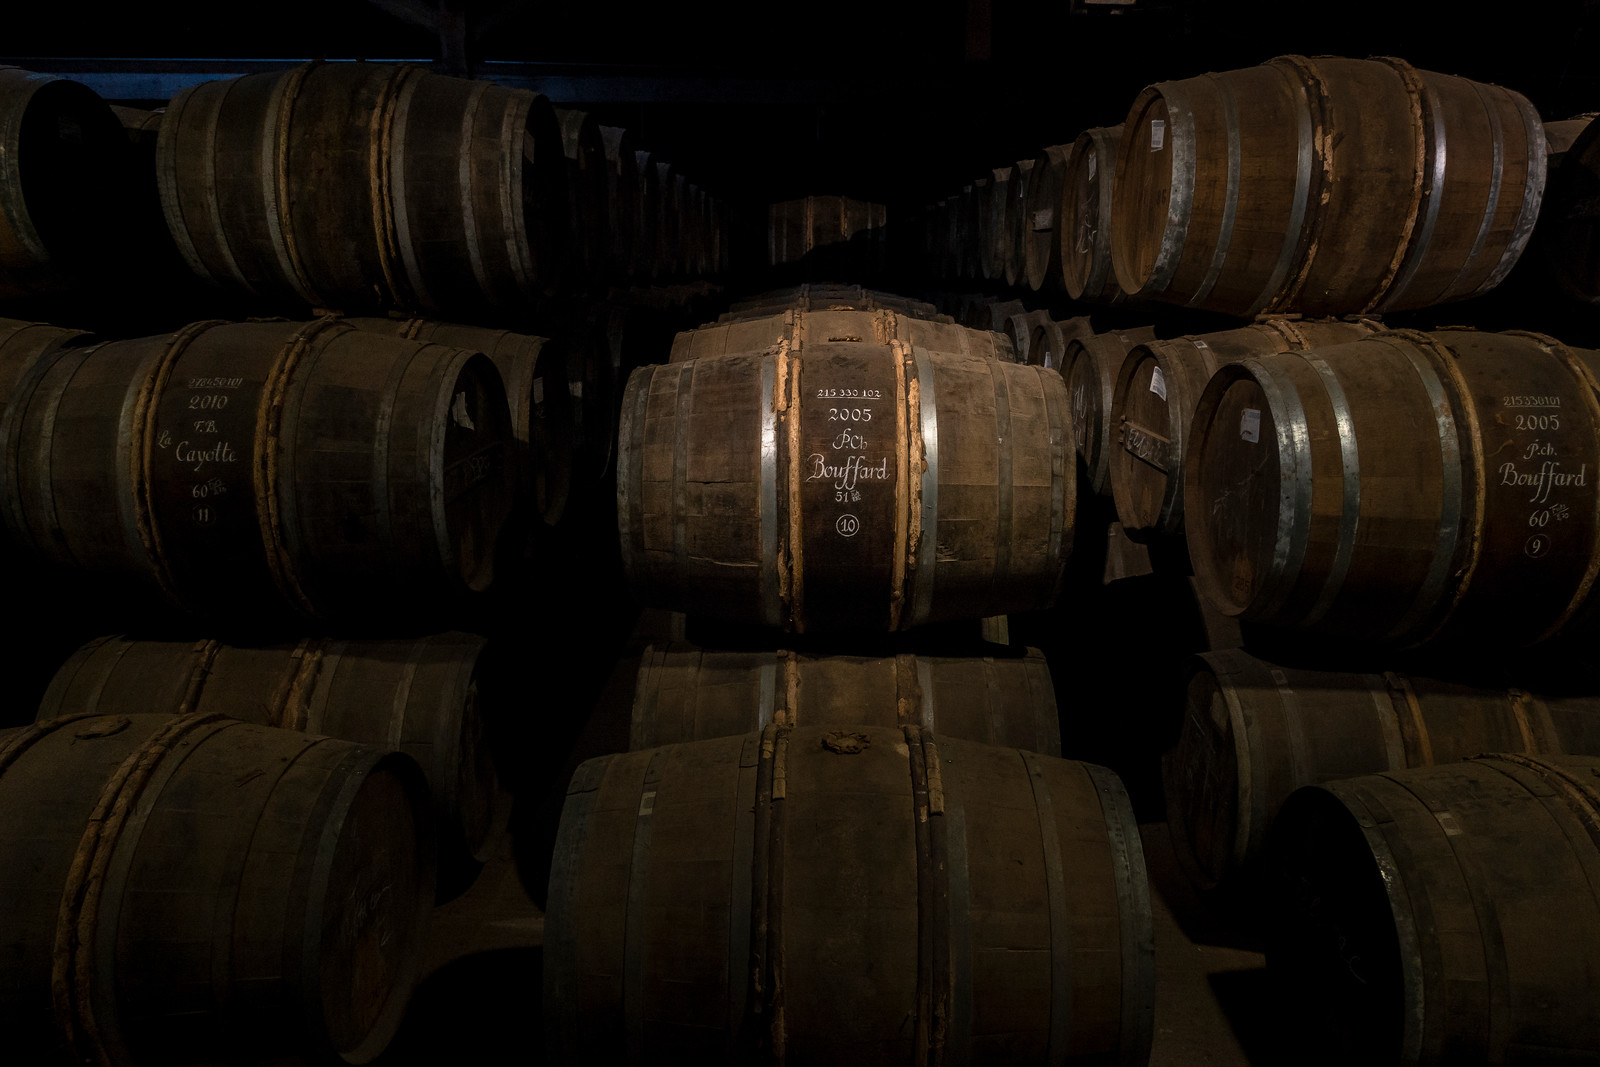 Visiting the cognac distilleries and cellars is one of the best things to do in Cognac